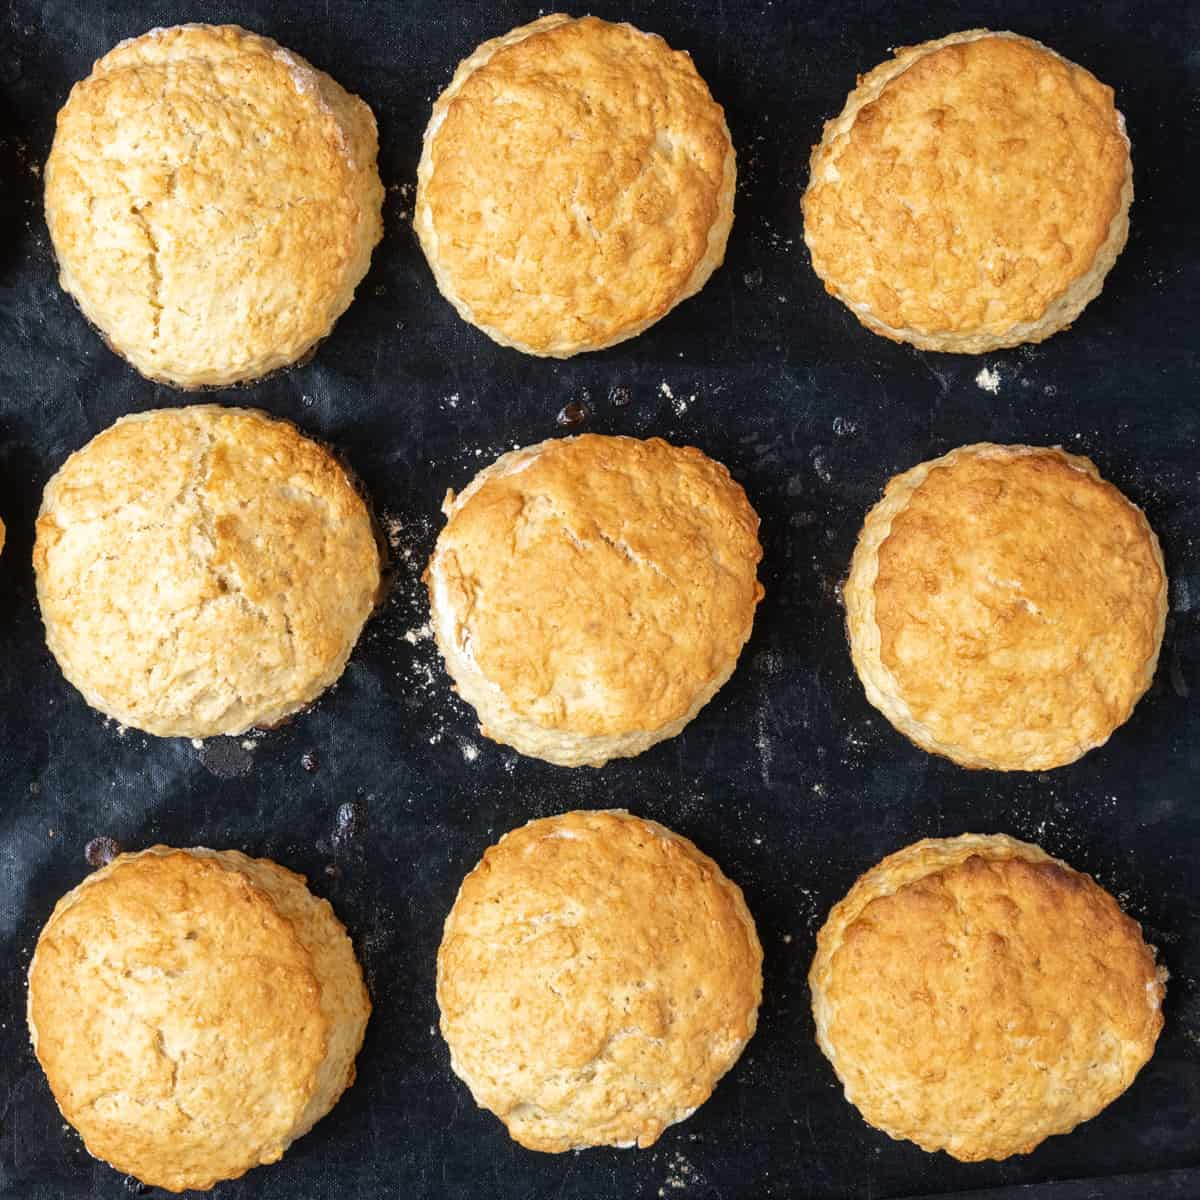 Nine golden brown baked biscuit cakes on a baking tray.